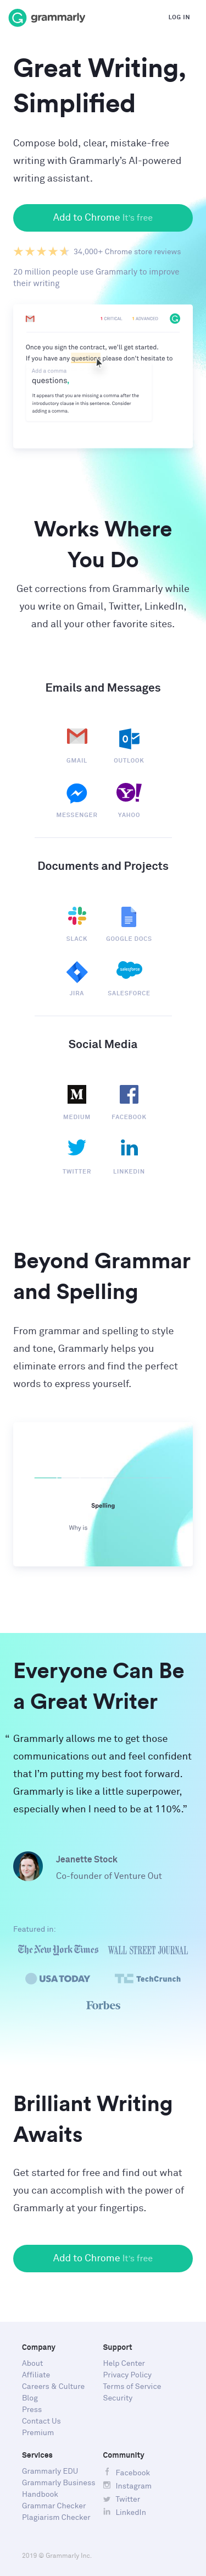 Example of Design for Books & Literature, Writers Resources, Mobile Landing Page by grammarly.com | Mobile Landing Page Design